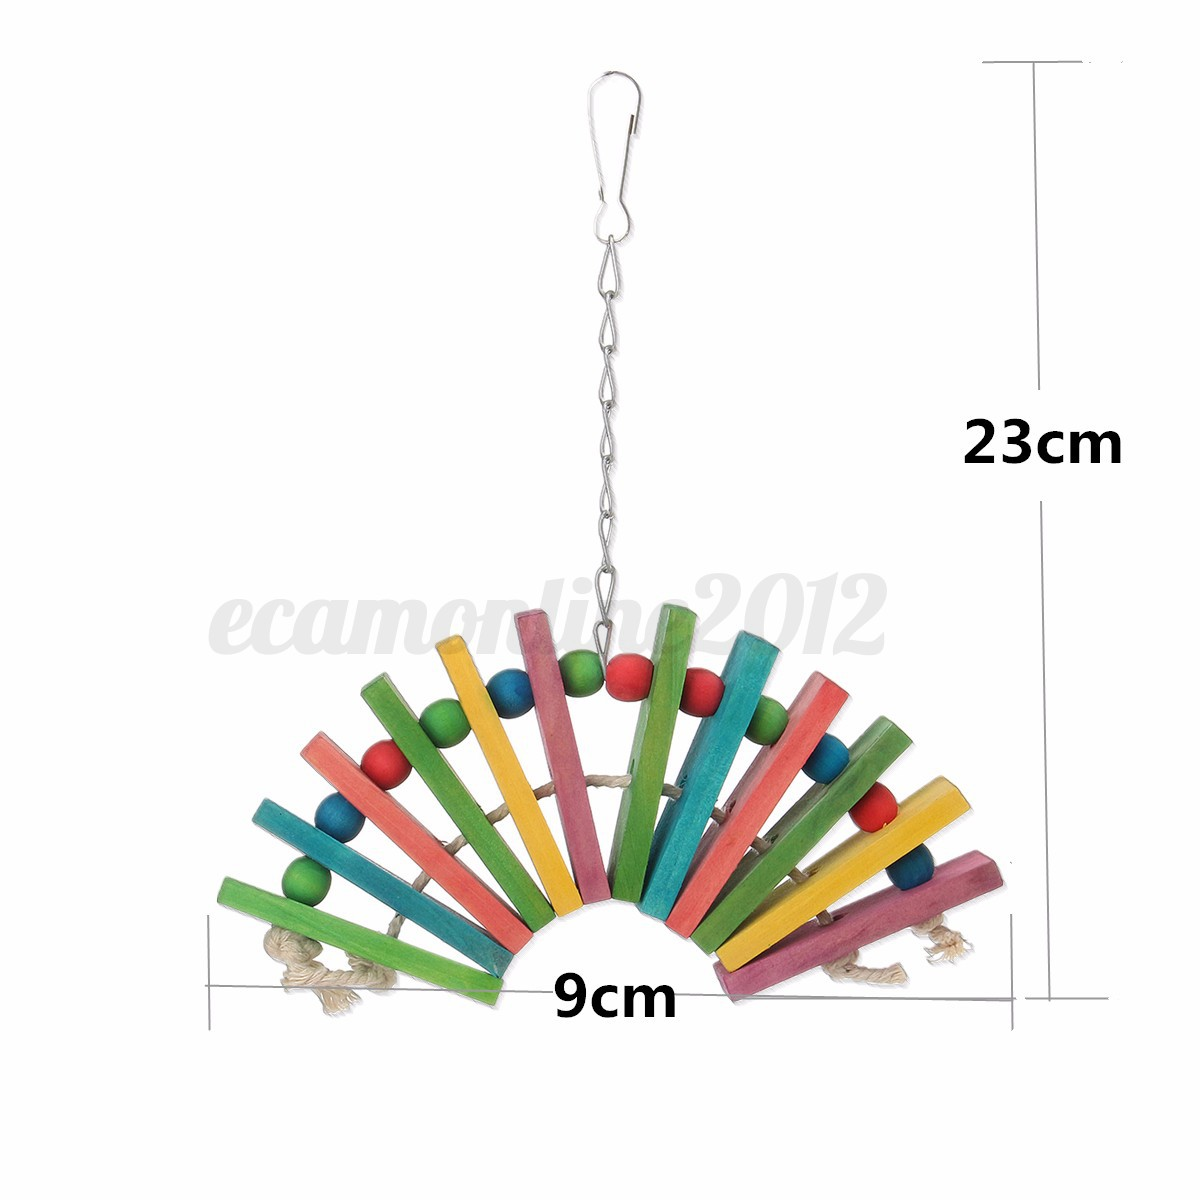 Parrot-Swing-Hanging-Bird-Toy-Nest-Bed-Rope-Cage-Bell-Parakeet-Cockatiel-Budgie thumbnail 22